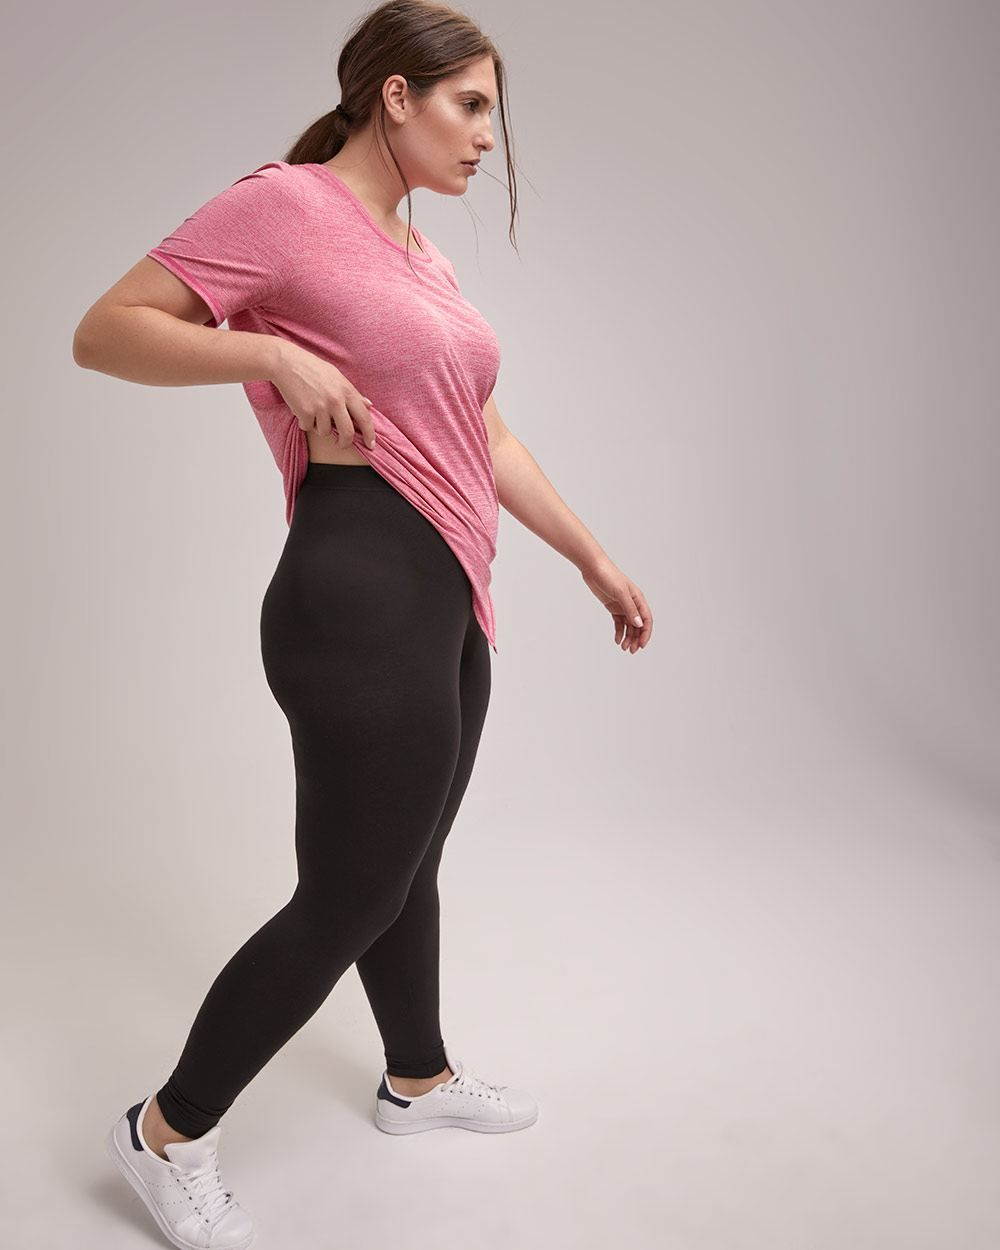 2b3df3b4c4343 Upgrade your basics with this plus-size legging! Made with an extra  stretchy fabric